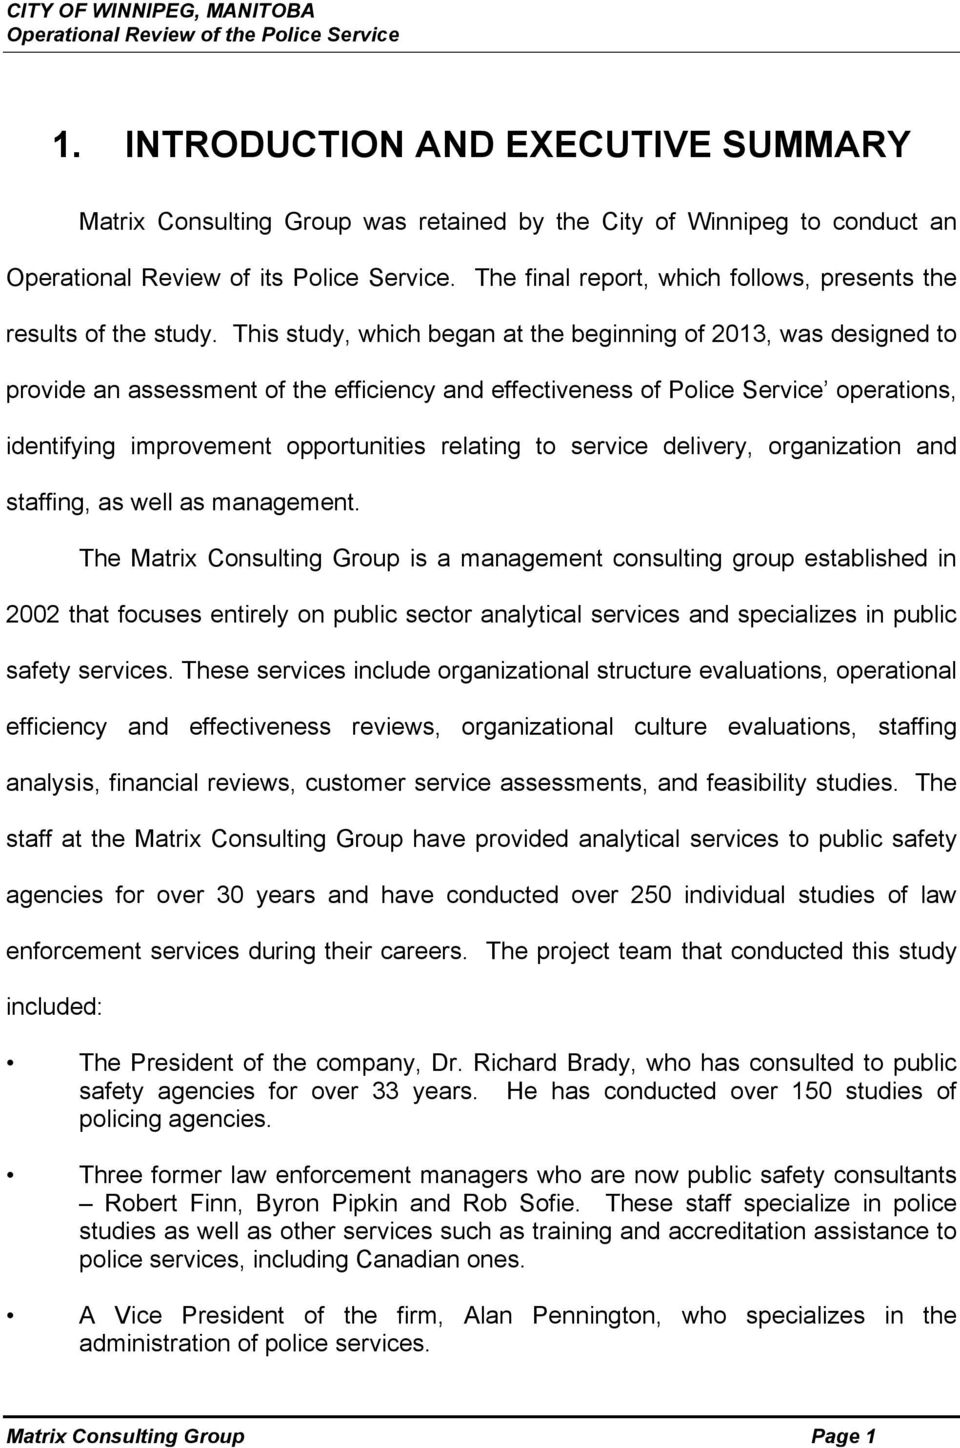 This study, which began at the beginning of 2013, was designed to provide an assessment of the efficiency and effectiveness of Police Service operations, identifying improvement opportunities